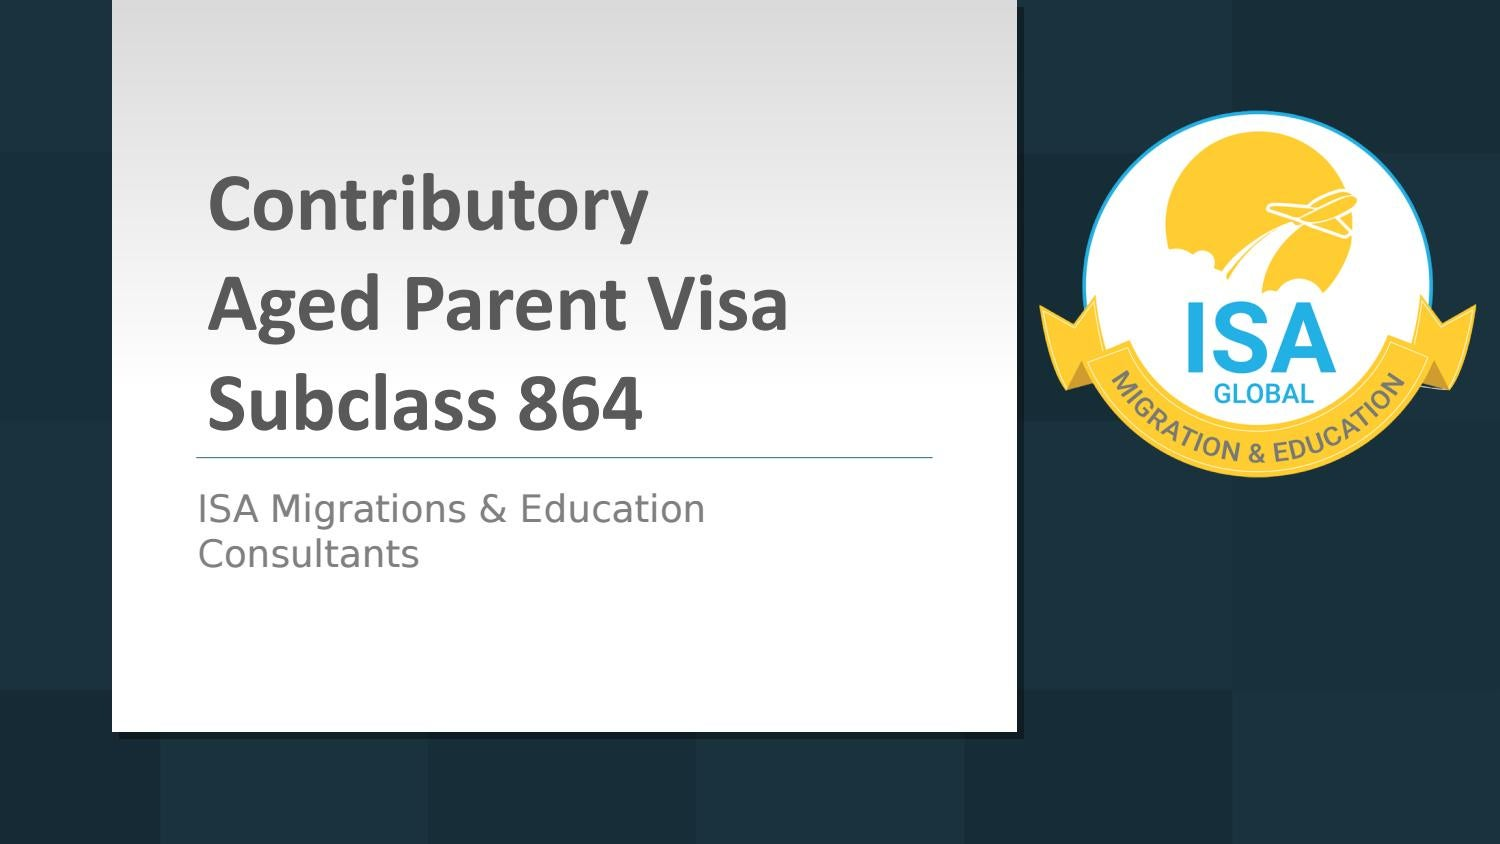 Apply For Contributory Aged Parent Visa Subclass 864 Isa Migrations Education Consultants By J Smith01 Issuu